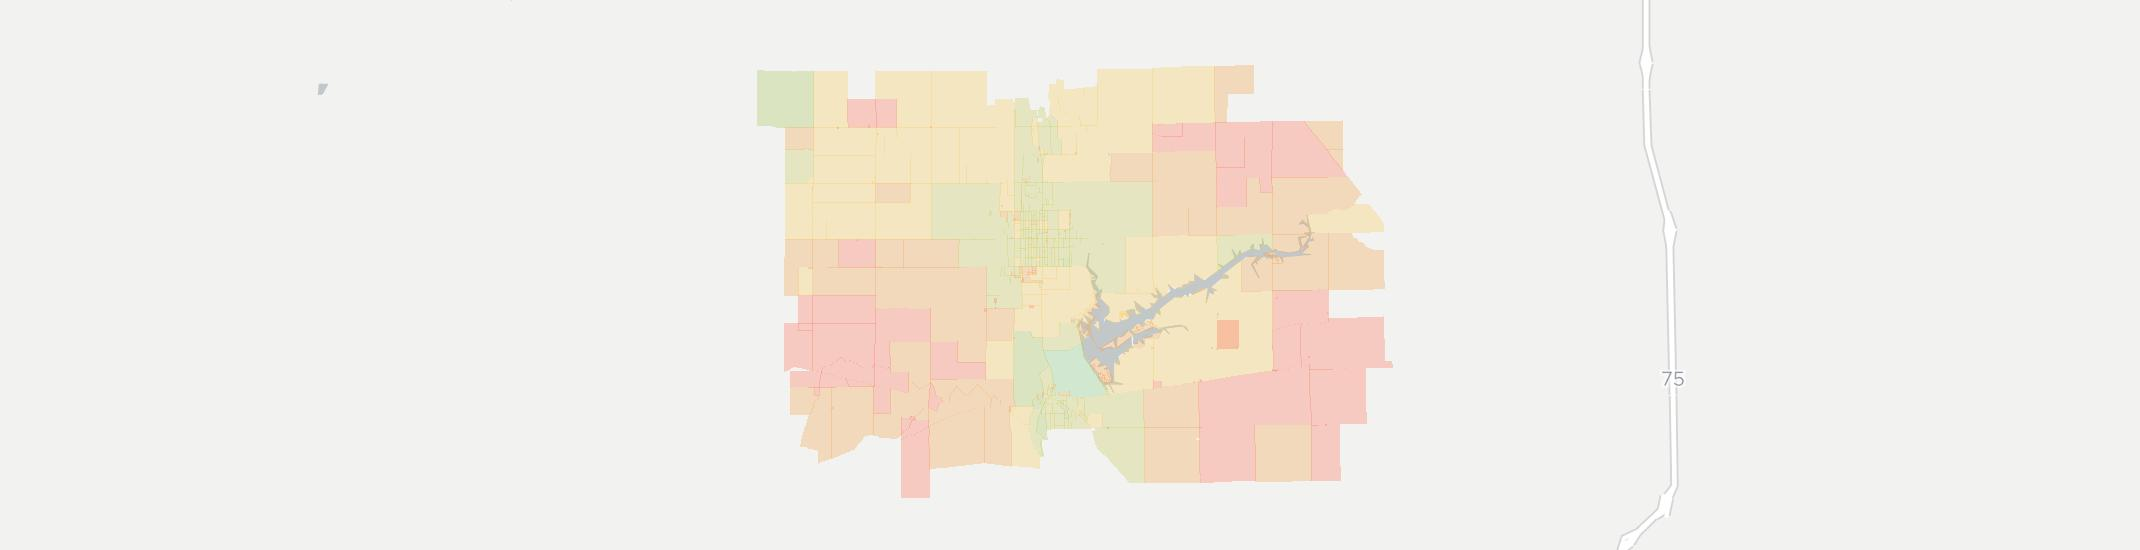 Minster Internet Competition Map. Click for interactive map.